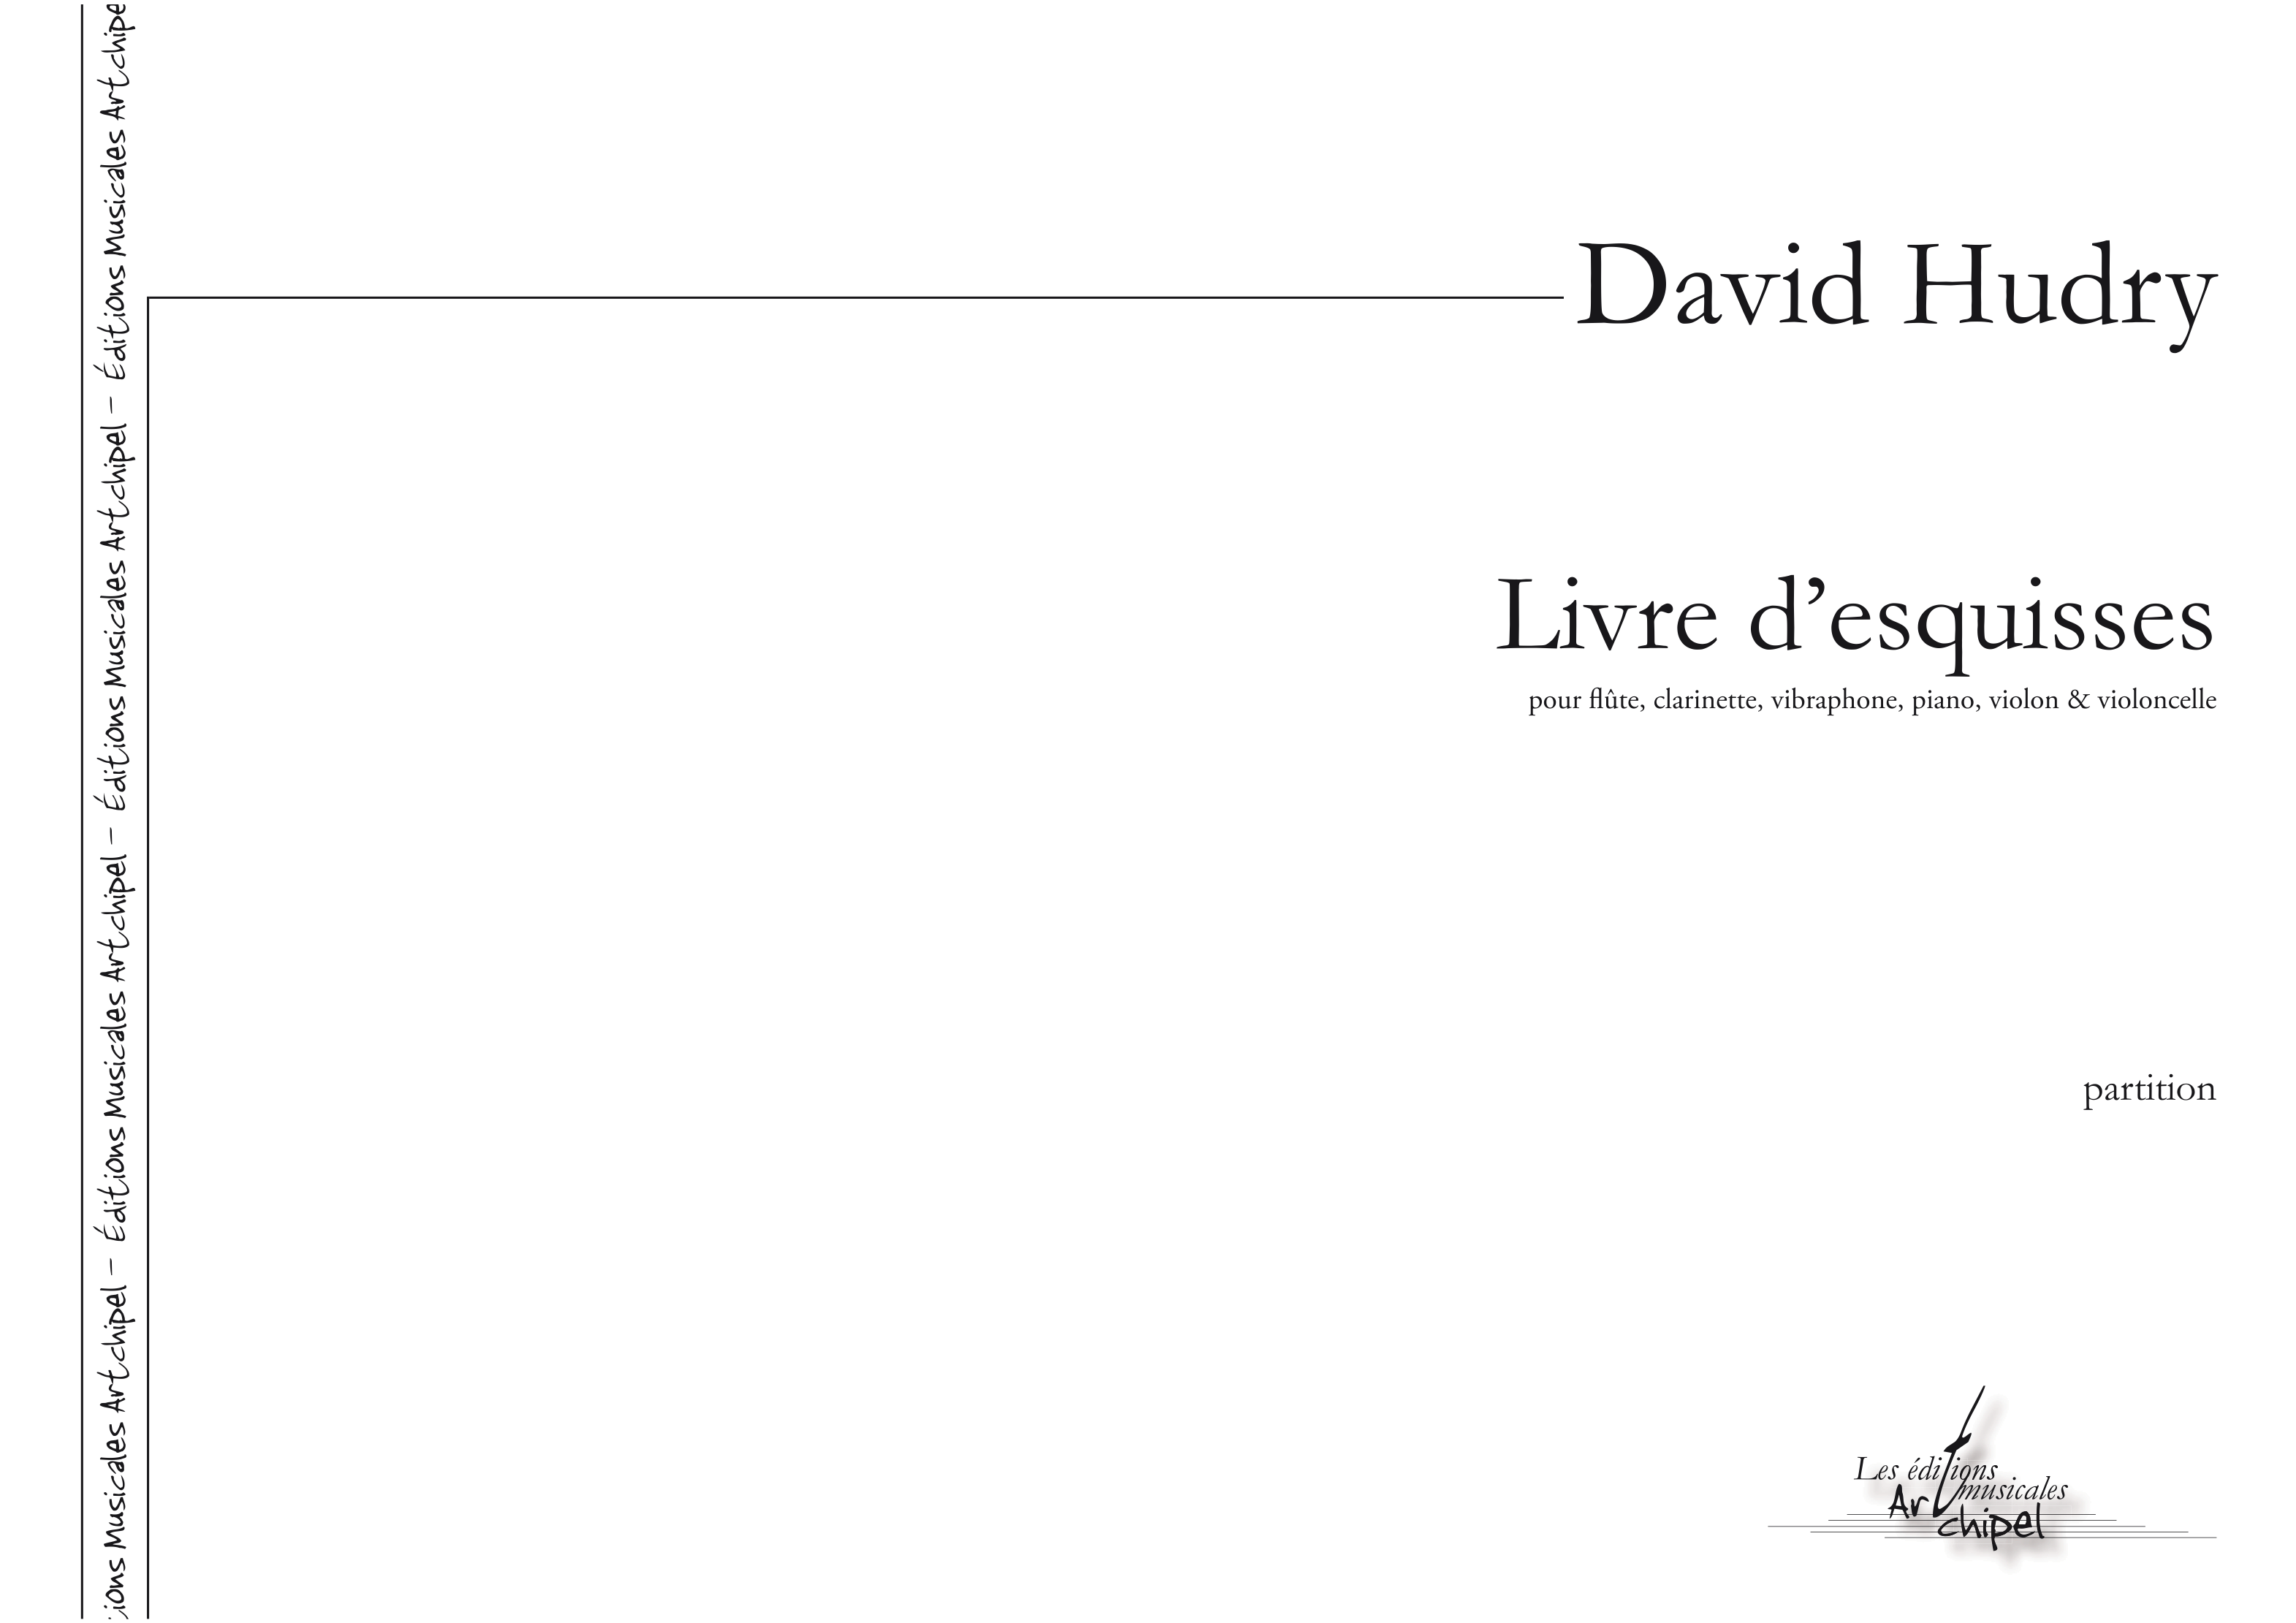 Livre d Esquisses HUDRY David A3 z